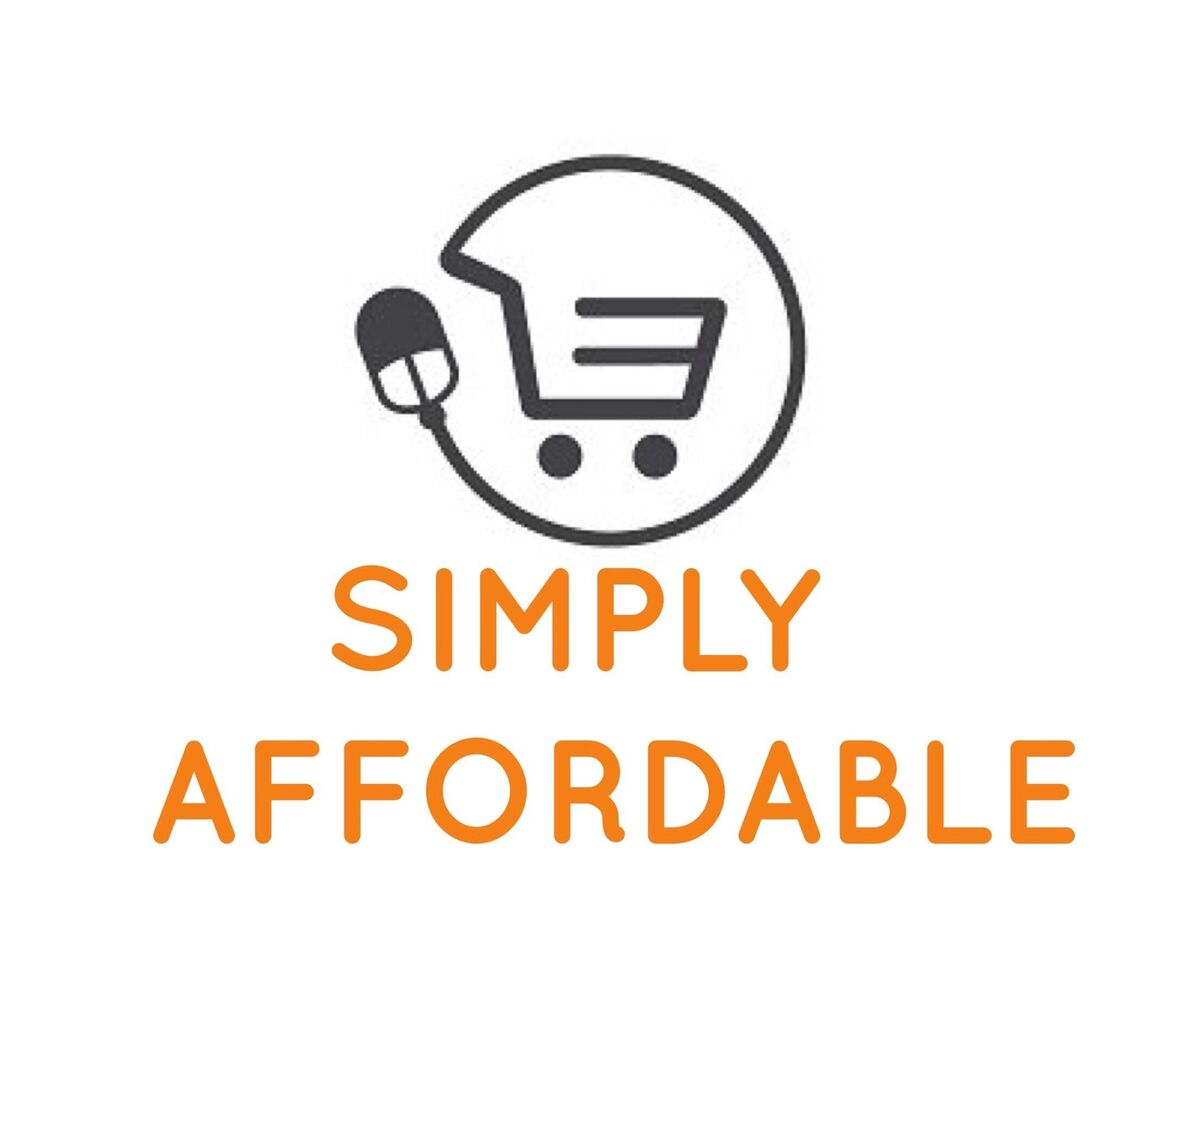 Simply Affordable